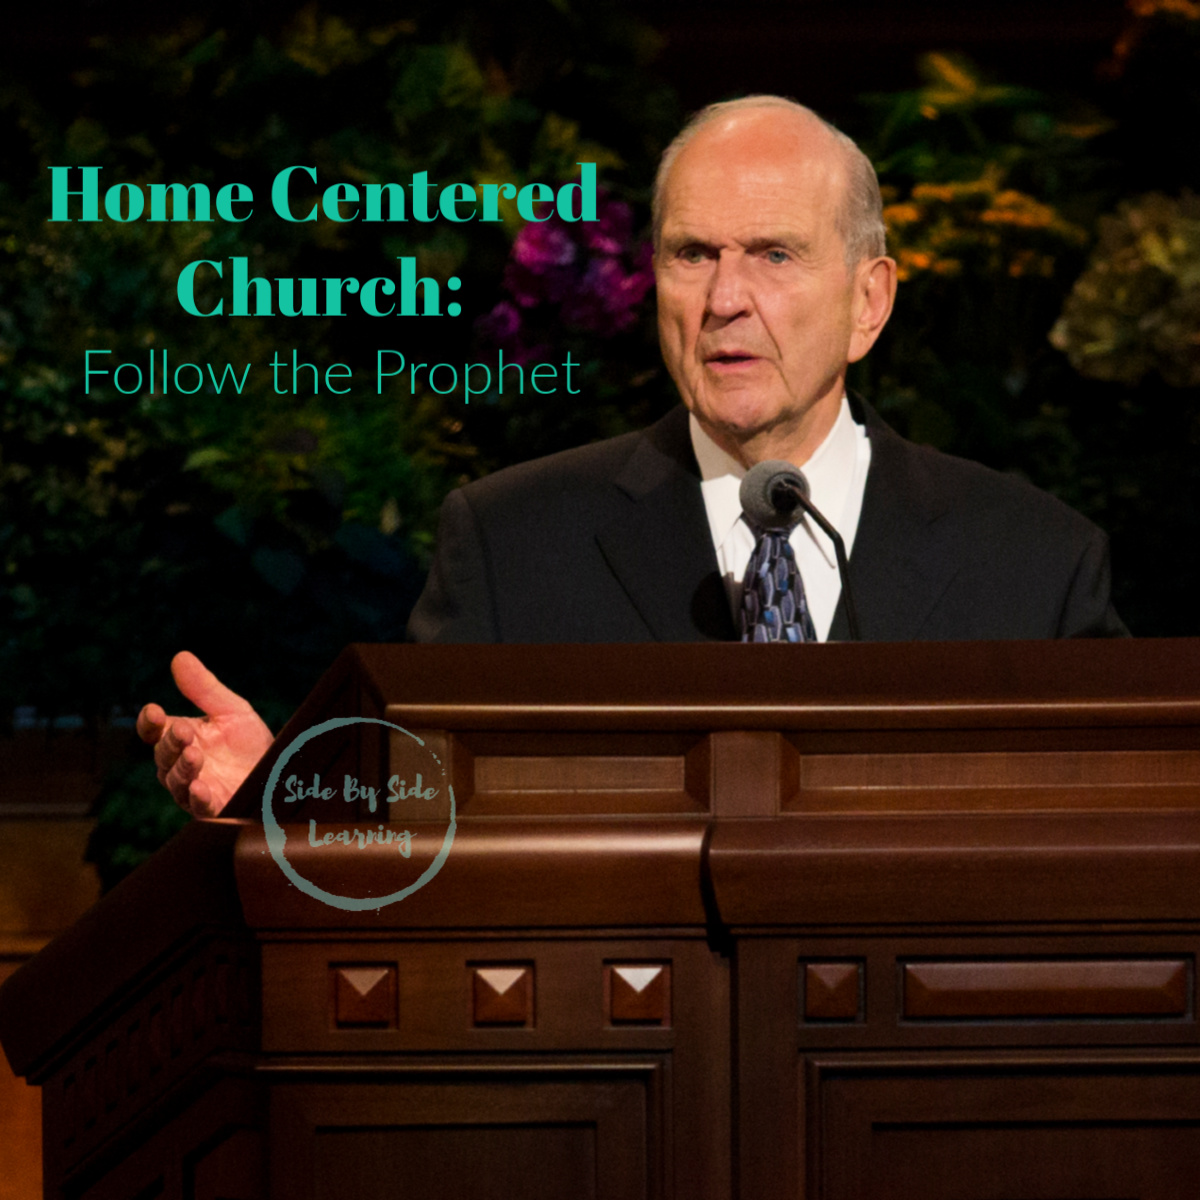 Home Centered Church_ Follow the Prophet